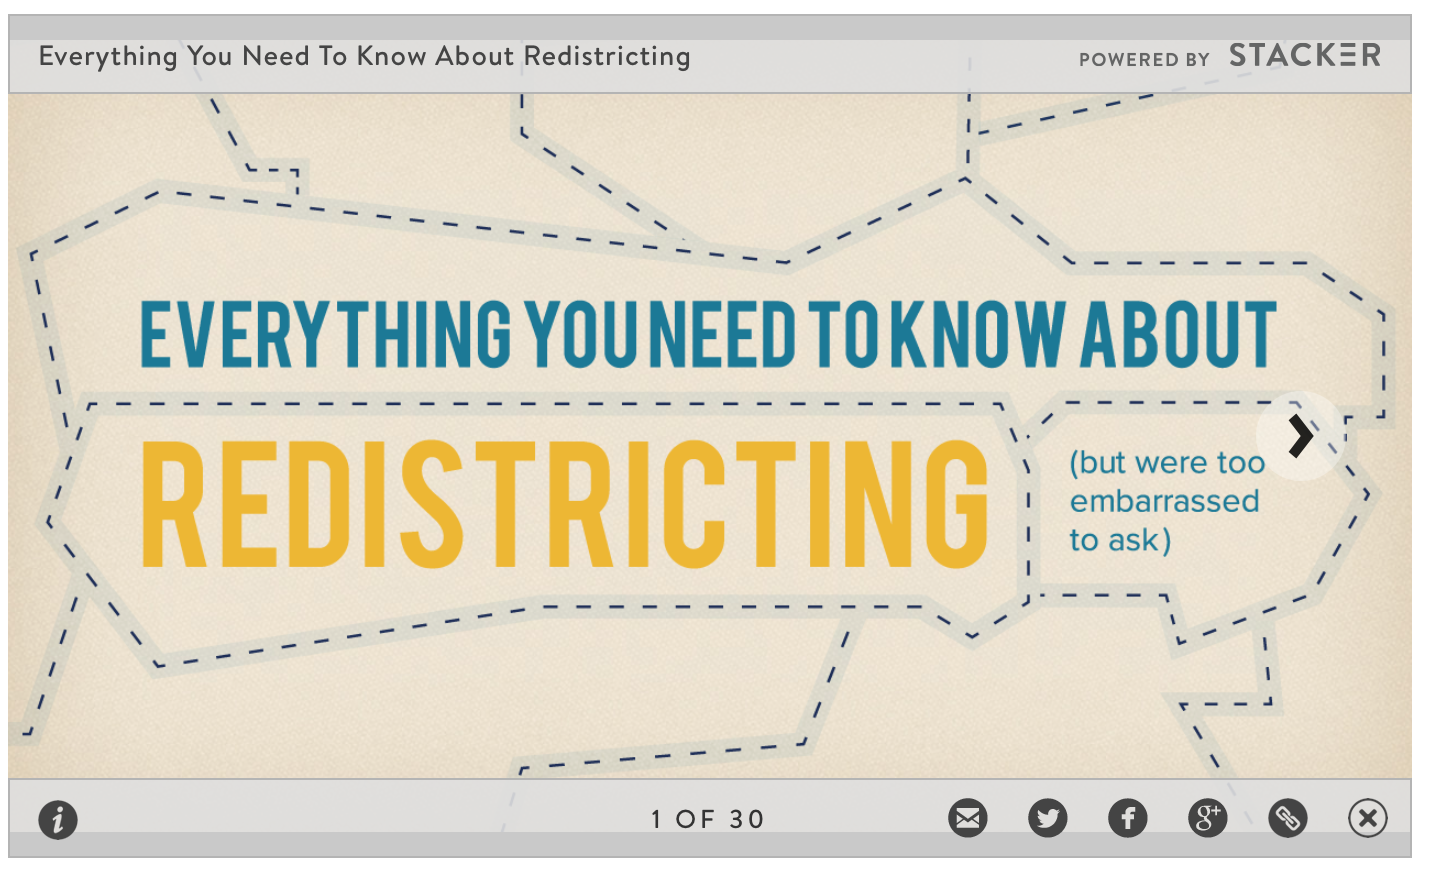 Click on image to go to a handy explanation of redistricting, and how it can go awry.